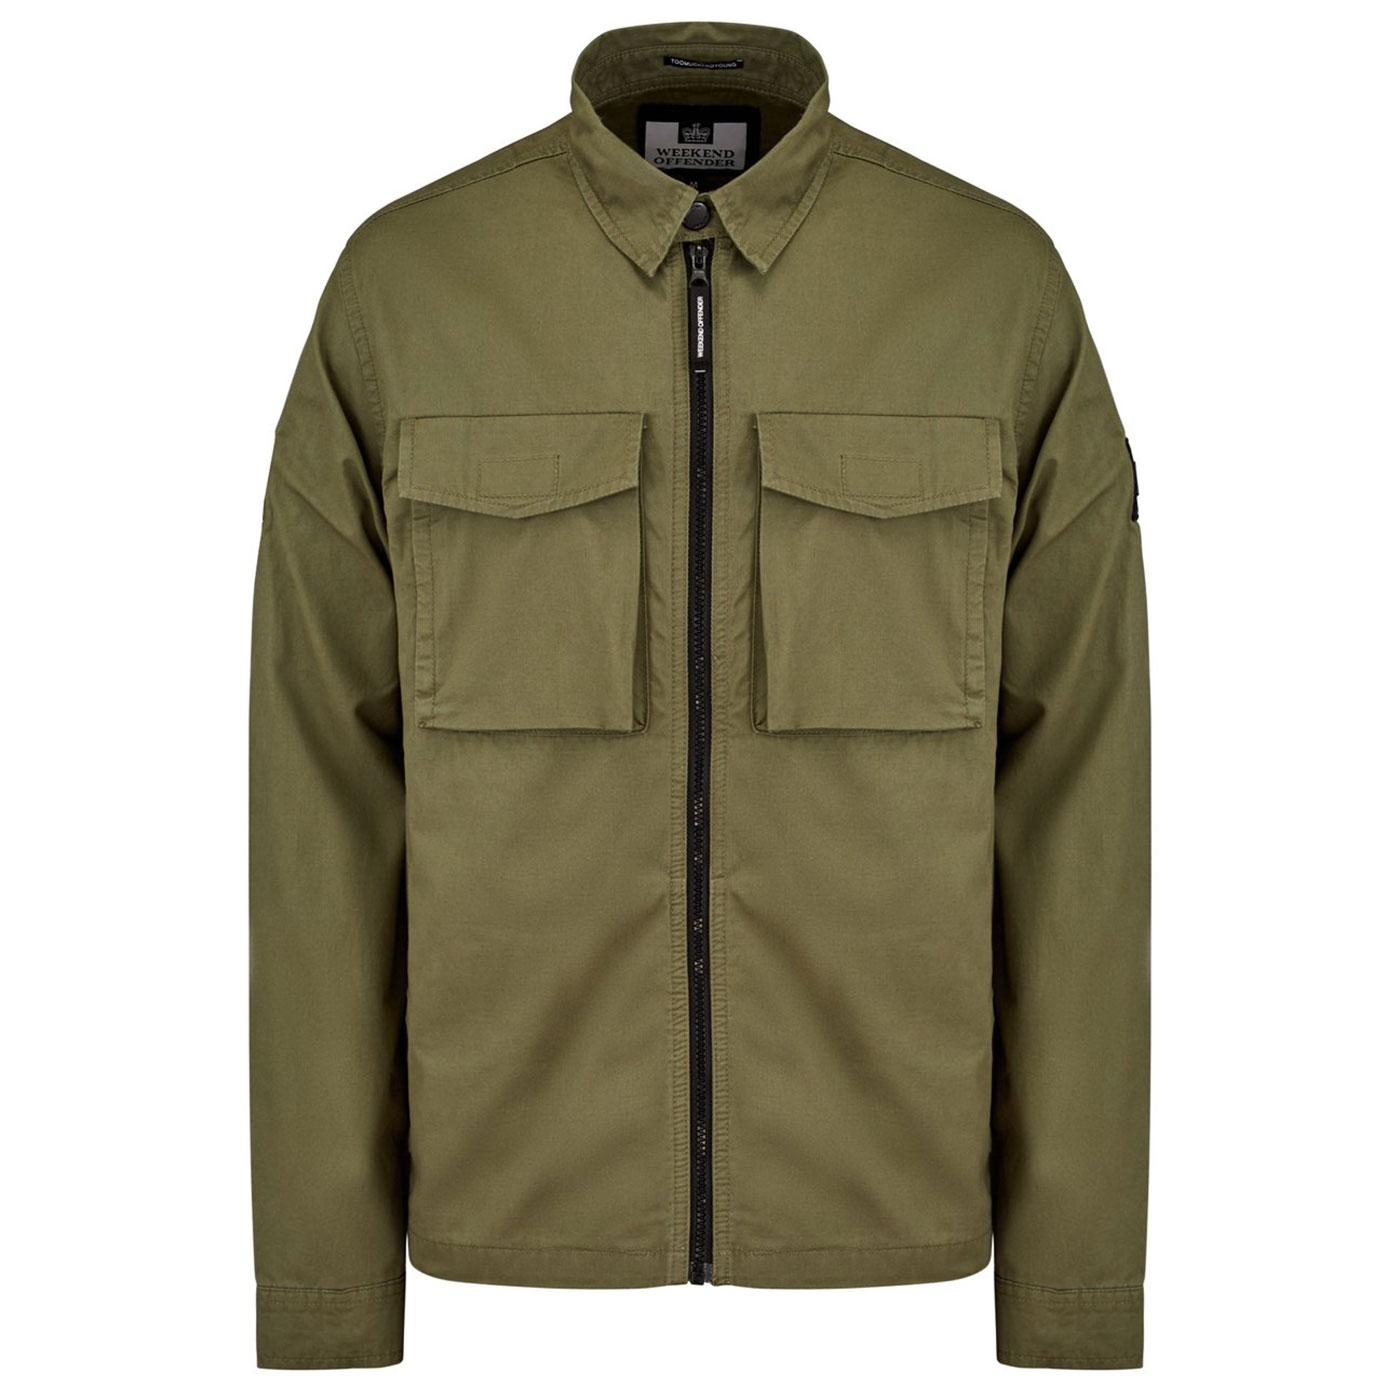 Pileggi WEEKEND OFFENDER Military Overshirt KHAKI